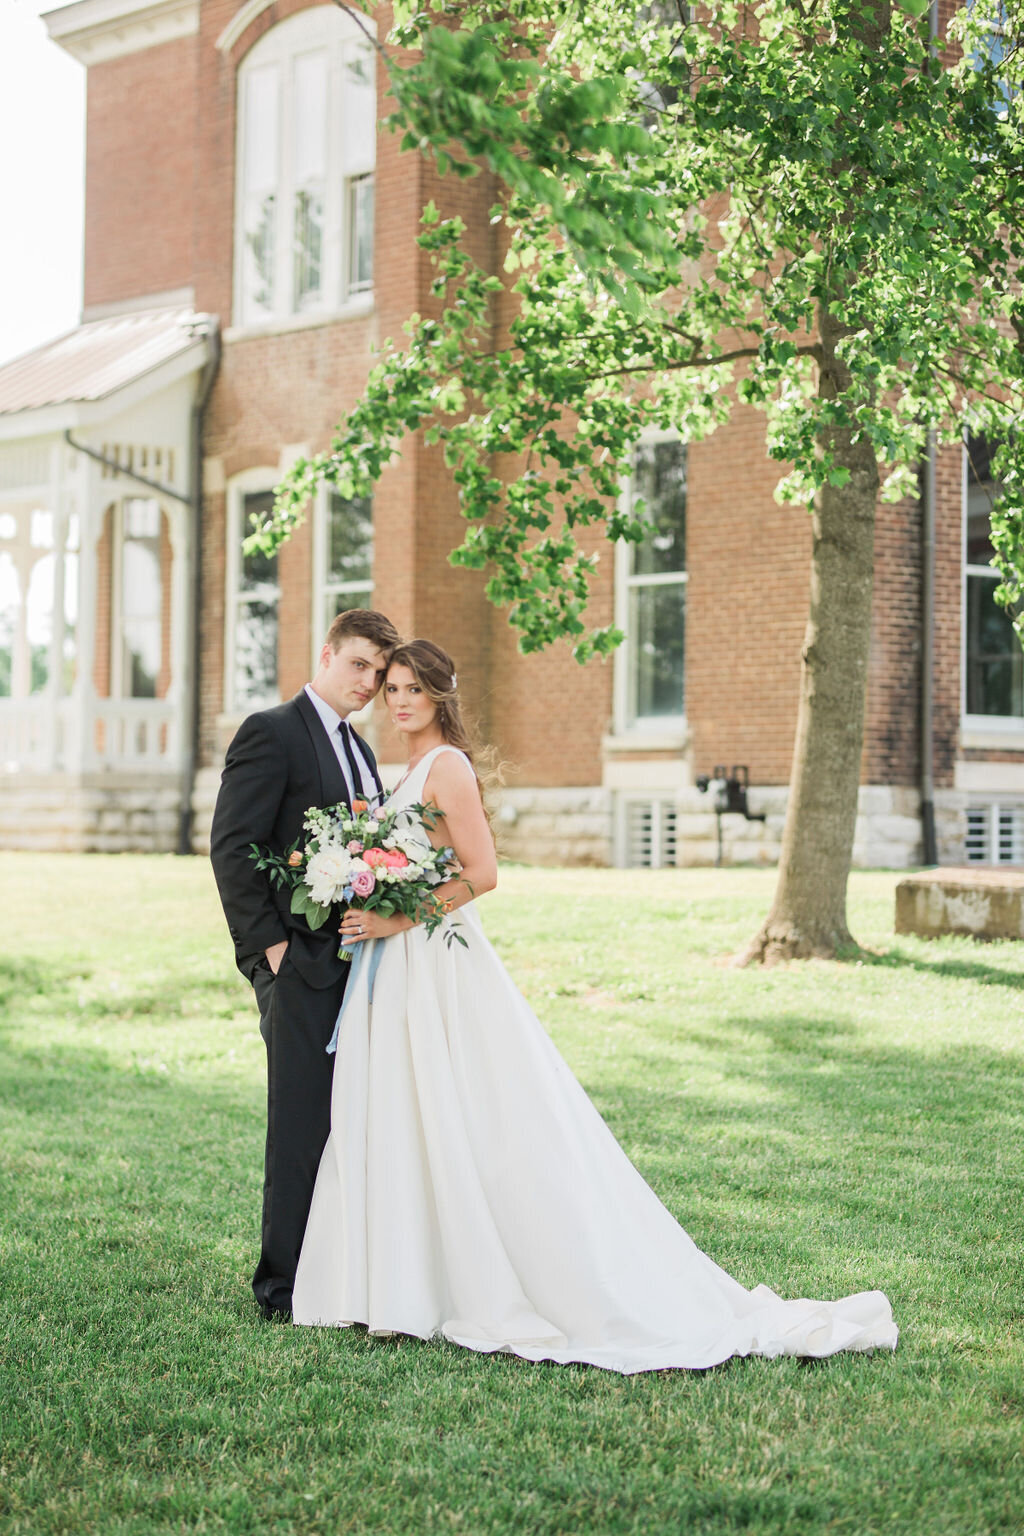 Lynwood Estate - Luxury Kentucky Wedding Venue - Fine Art Couple 00004